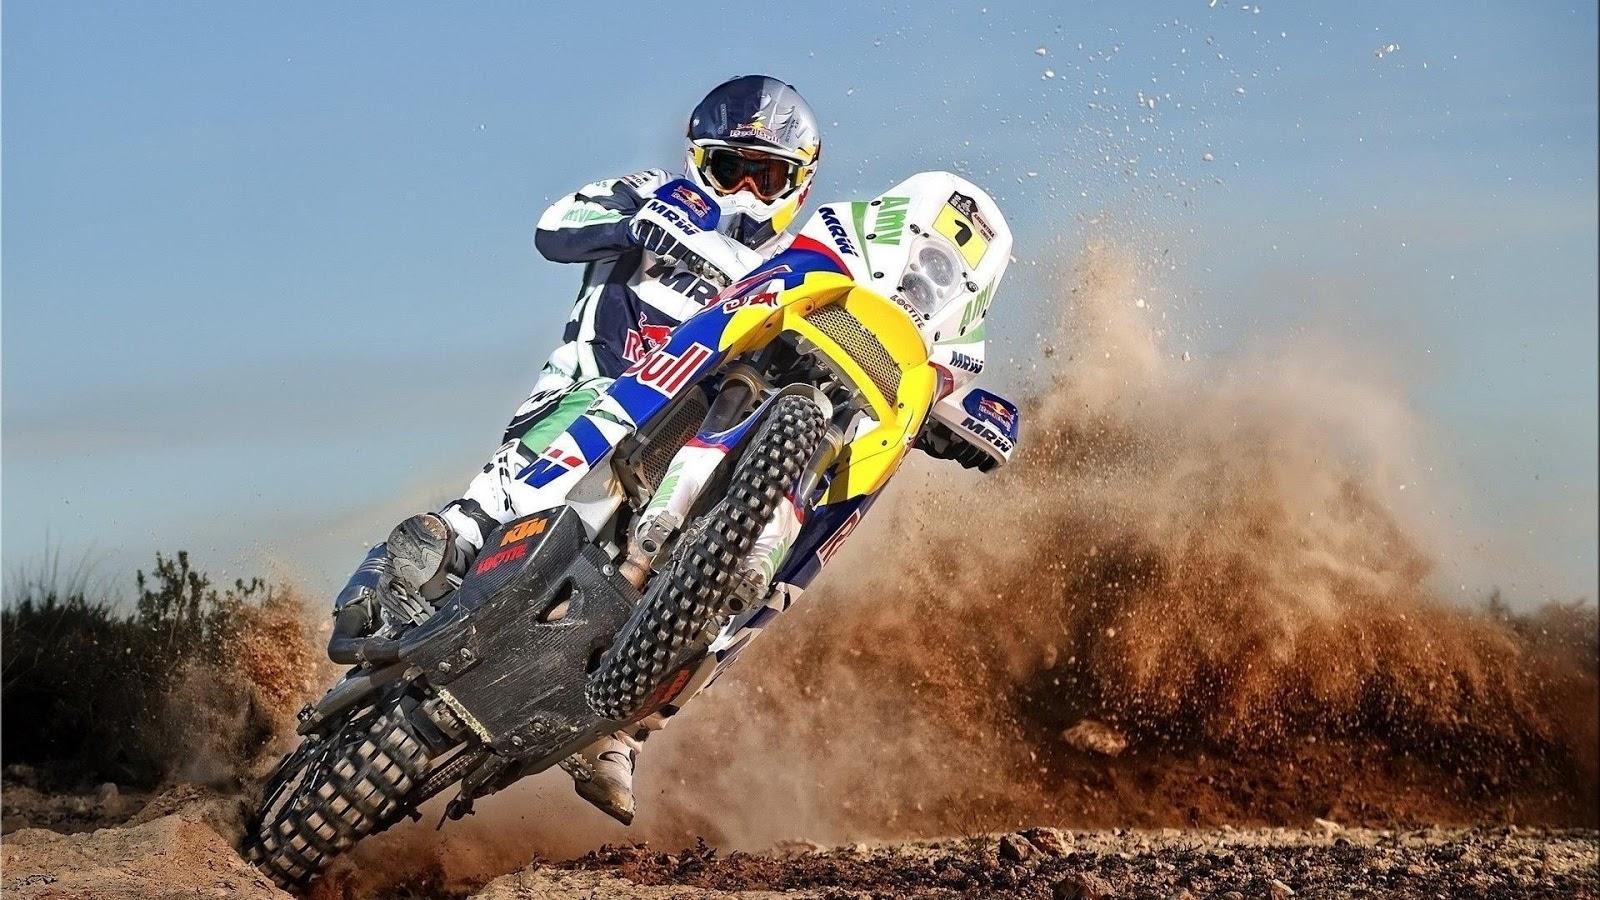 Freedom Motocross Wallpapers Android Apps on Google Play